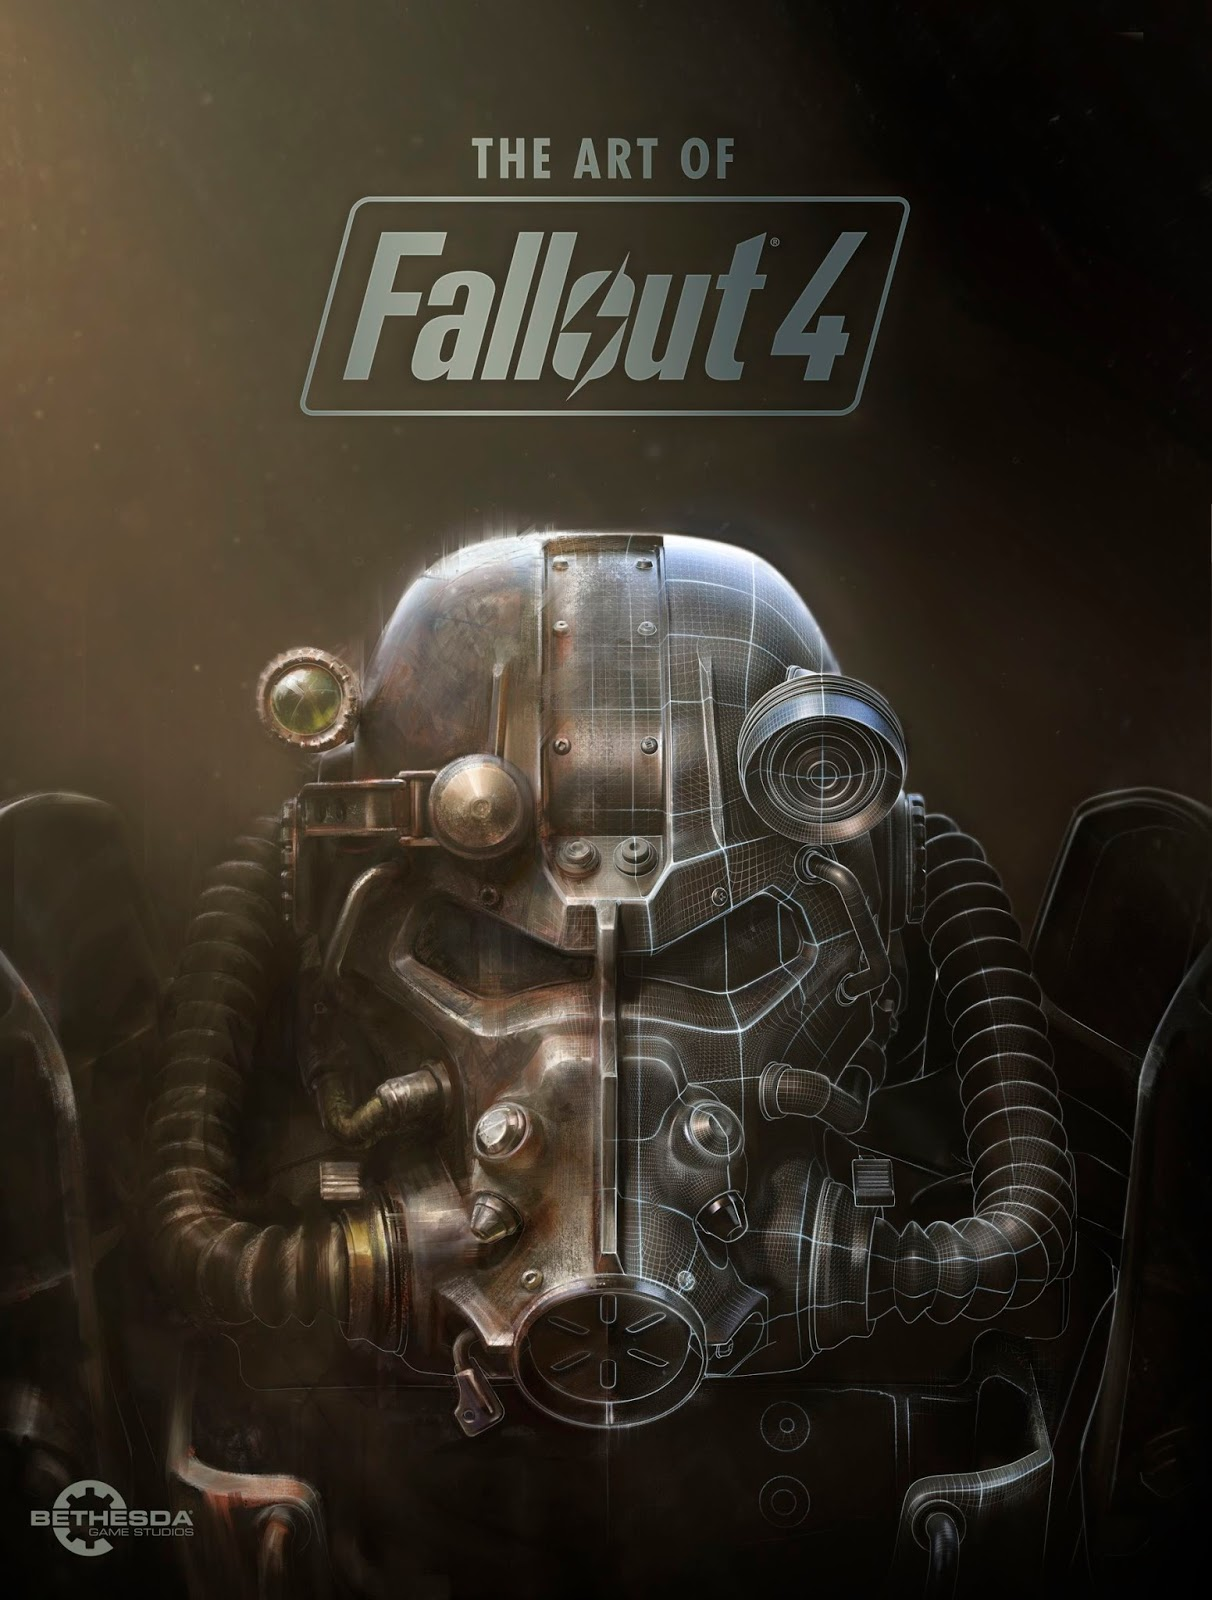 The Art Of Fallout 4 Artbook